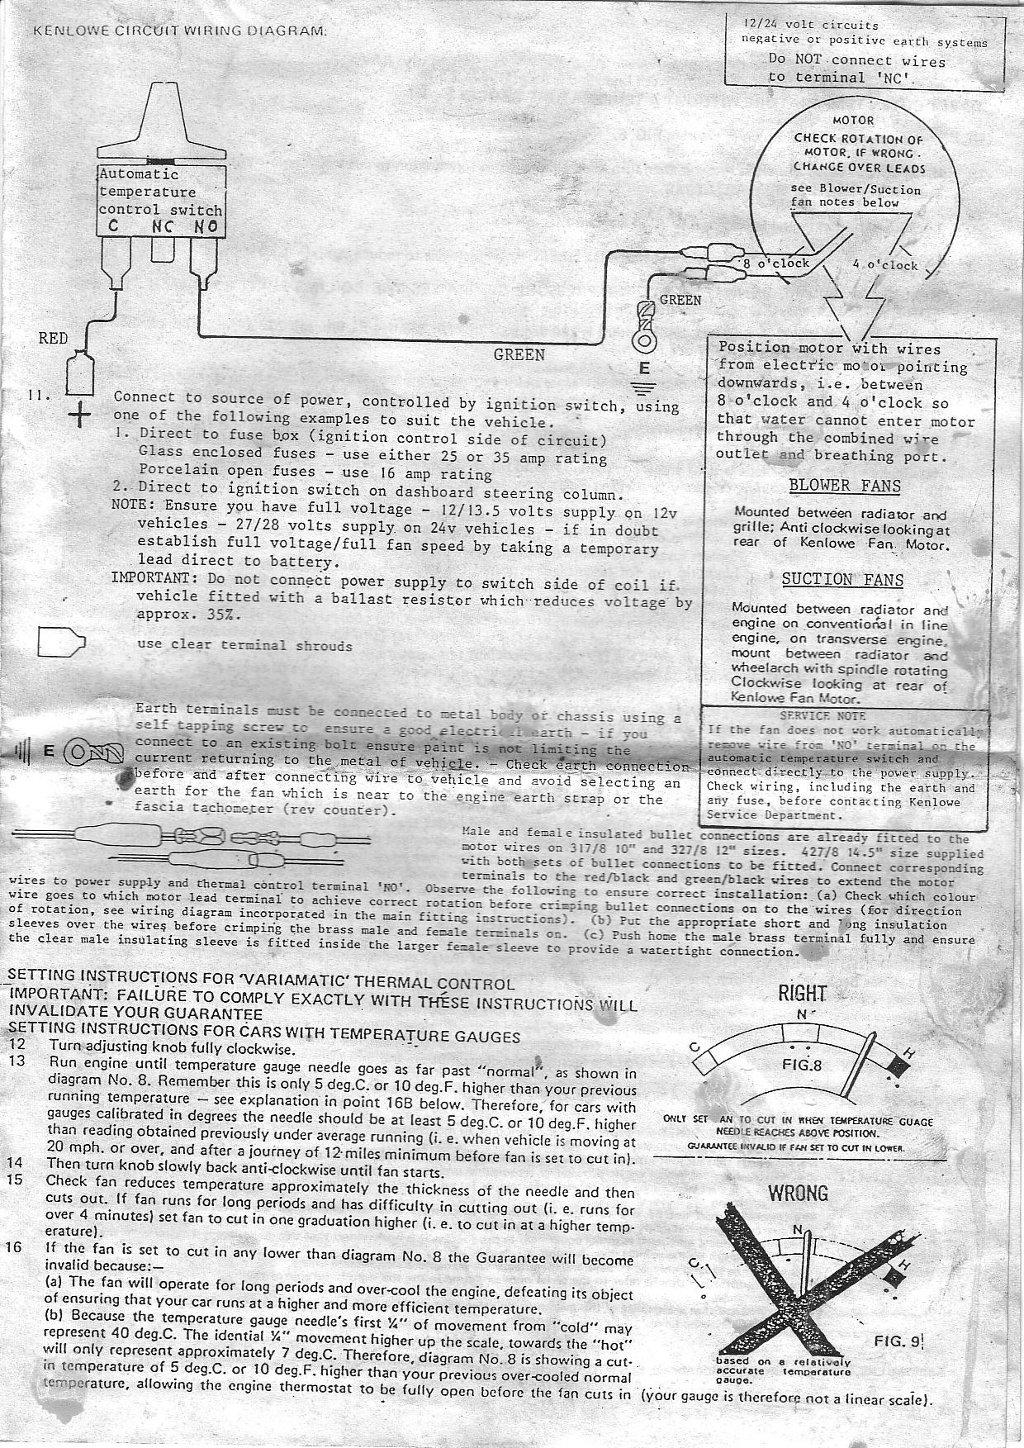 Kenlowe Fan Wiring Diagram Detailed Schematics How To Wire Electric Fitting A Unifan Classic Opel Spares Be Cool Fans